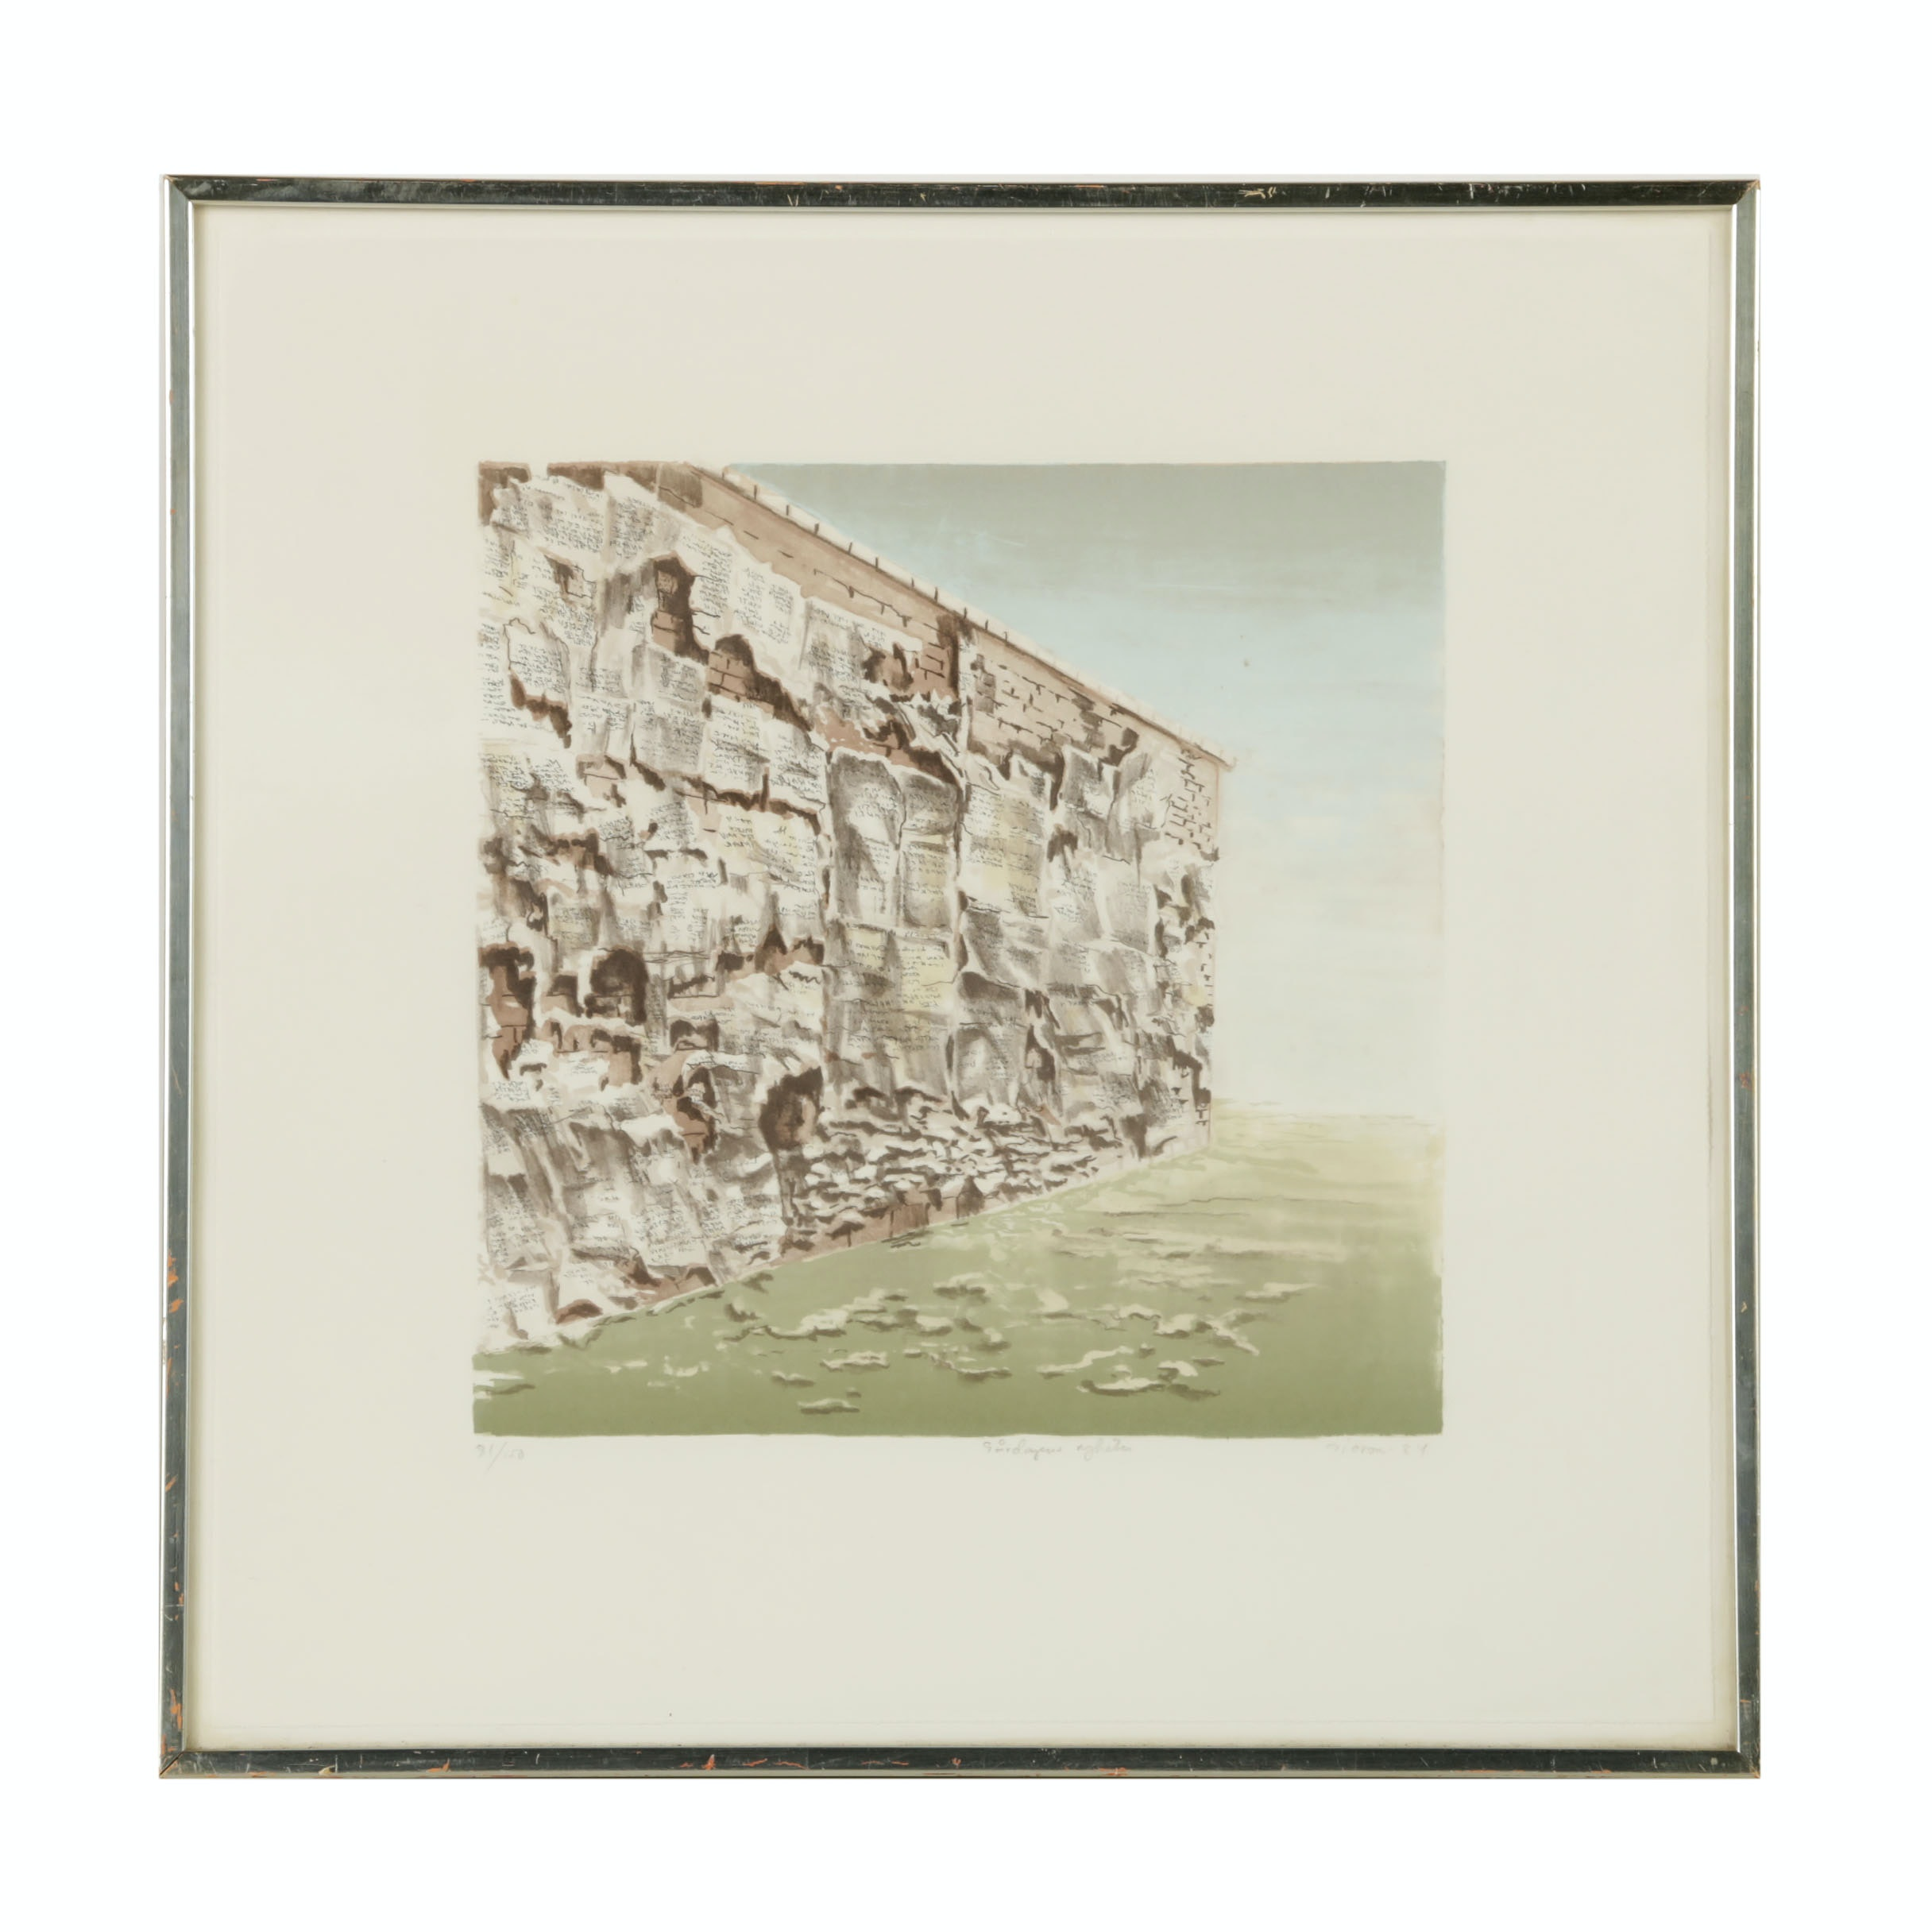 Lithograph of a Wall